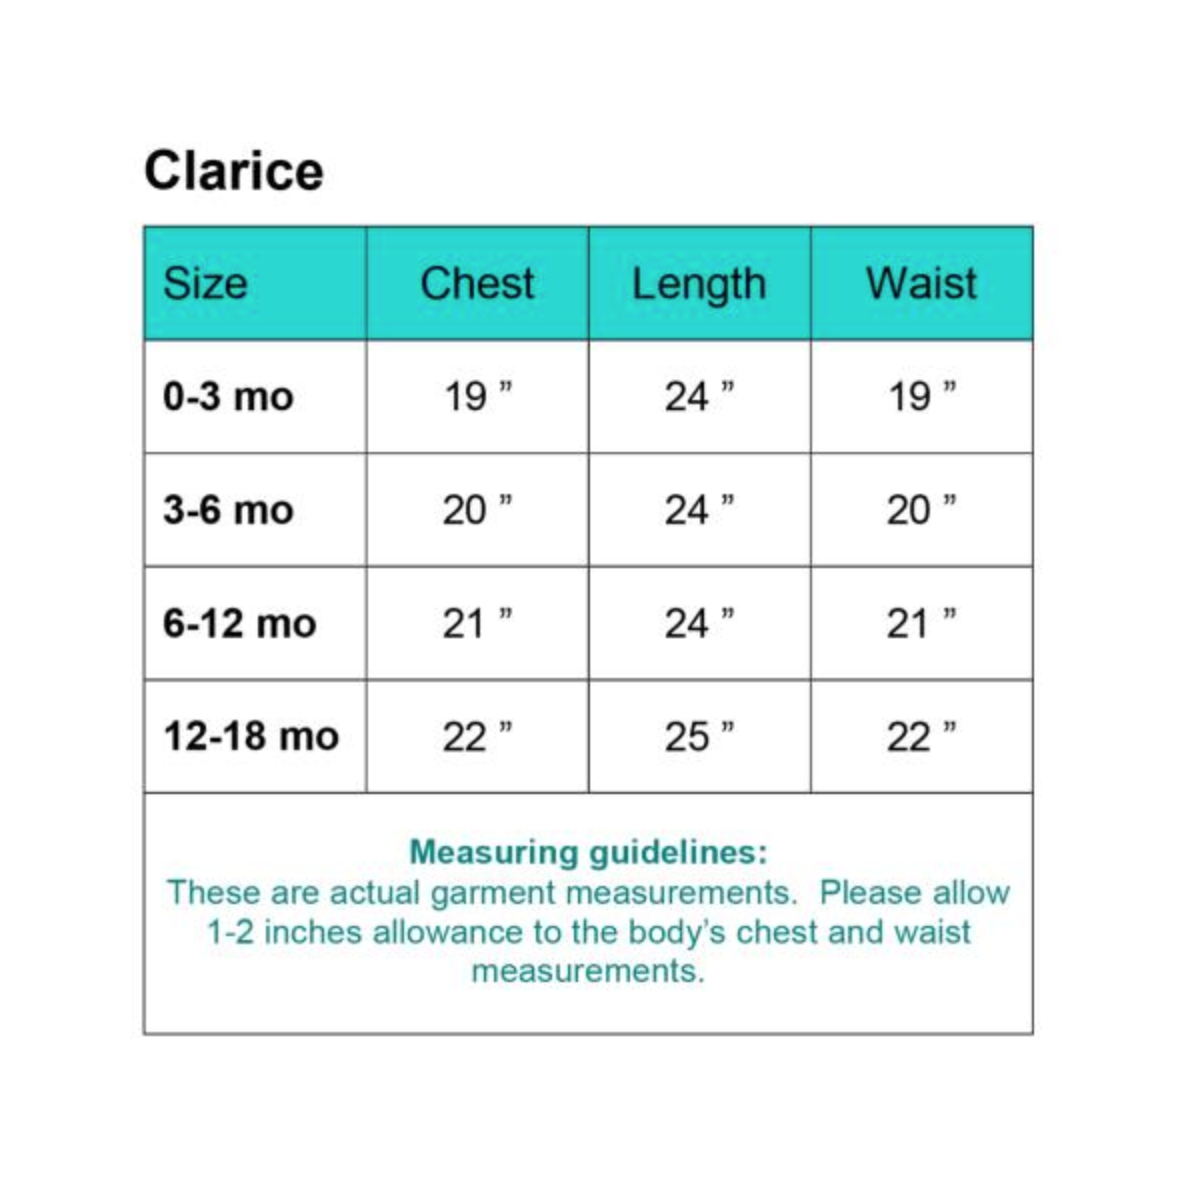 sizing-chart-clarice.png